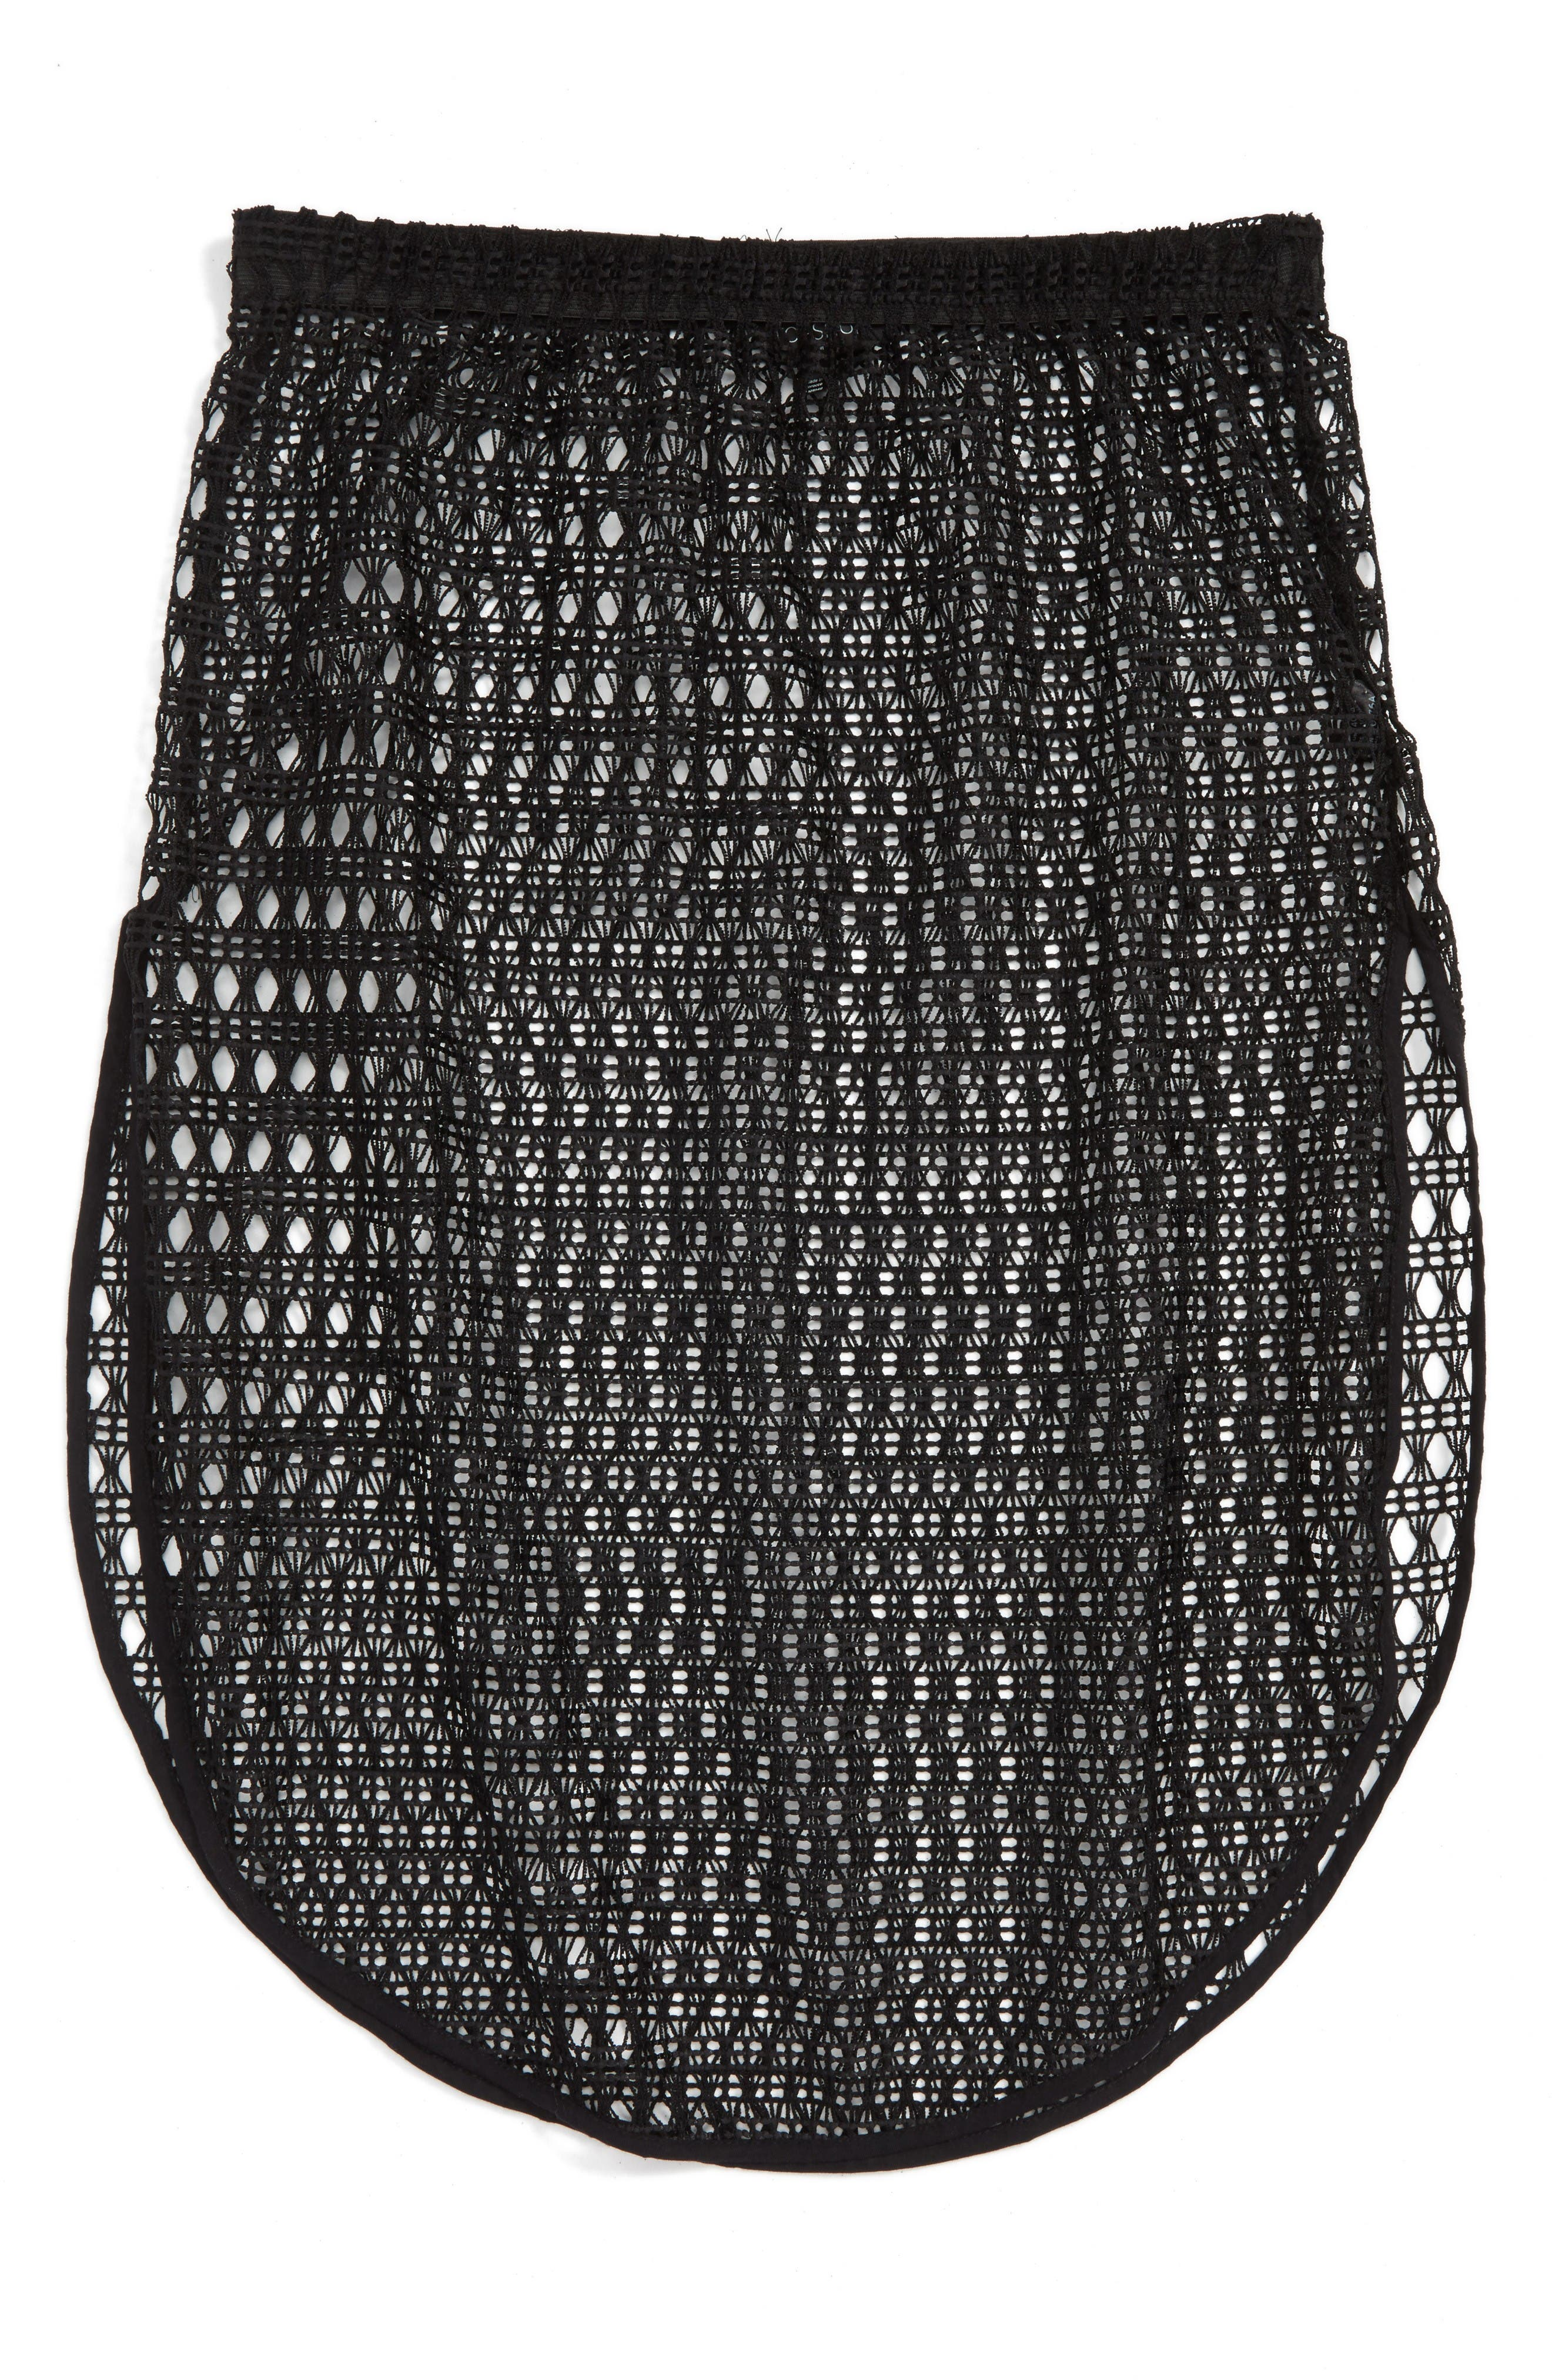 Alternate Image 1 Selected - Topshop Lace Cover-Up Skirt